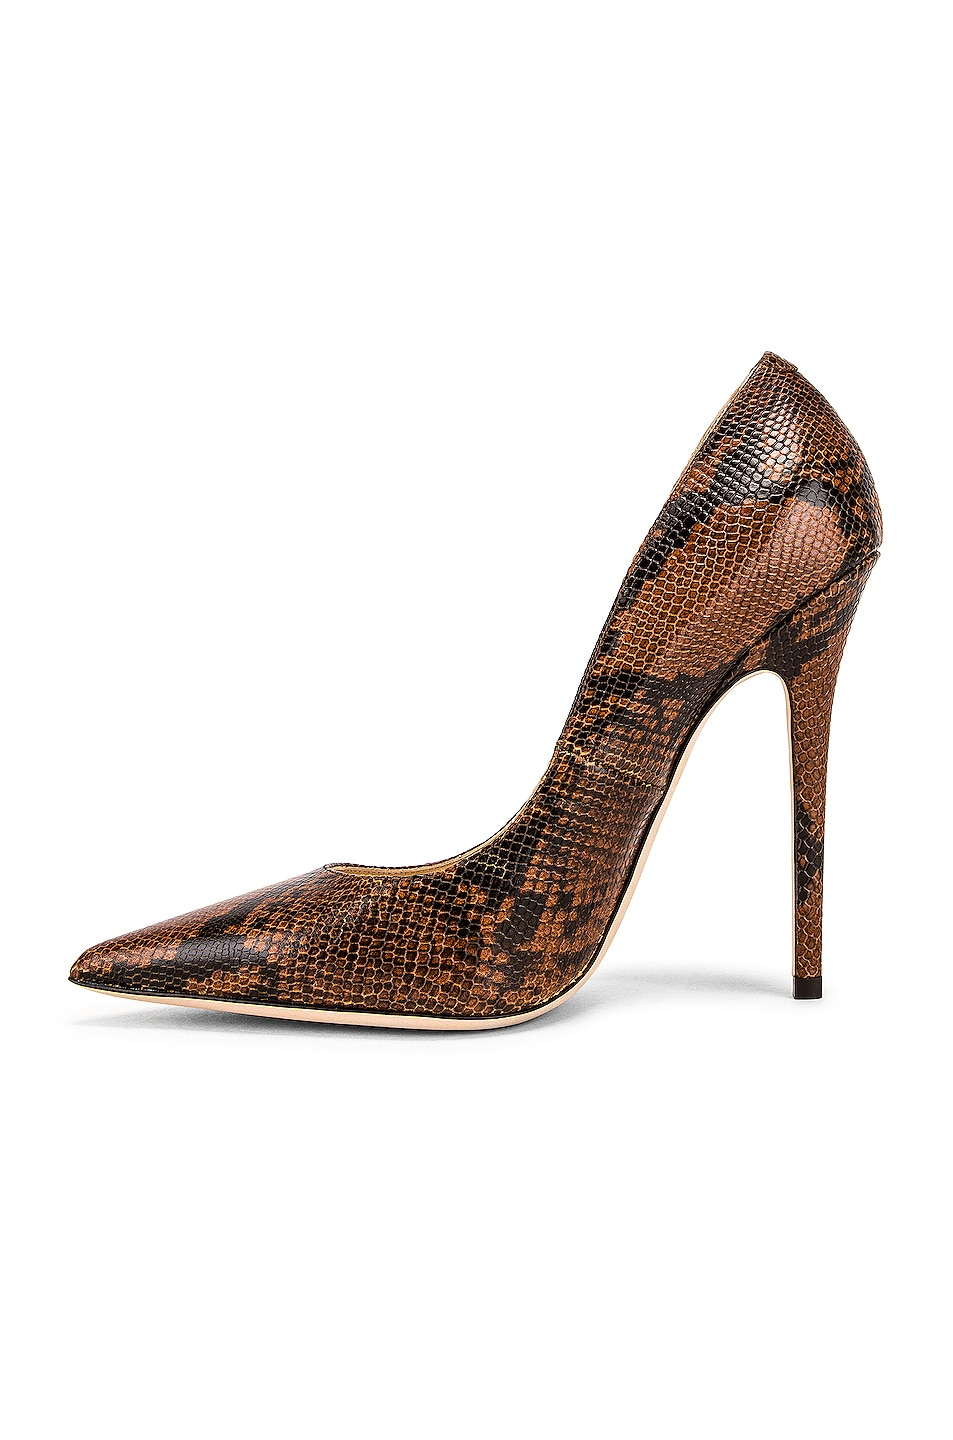 Image 5 of Jimmy Choo Snake Print Anouk 120 Heel in Cuoio